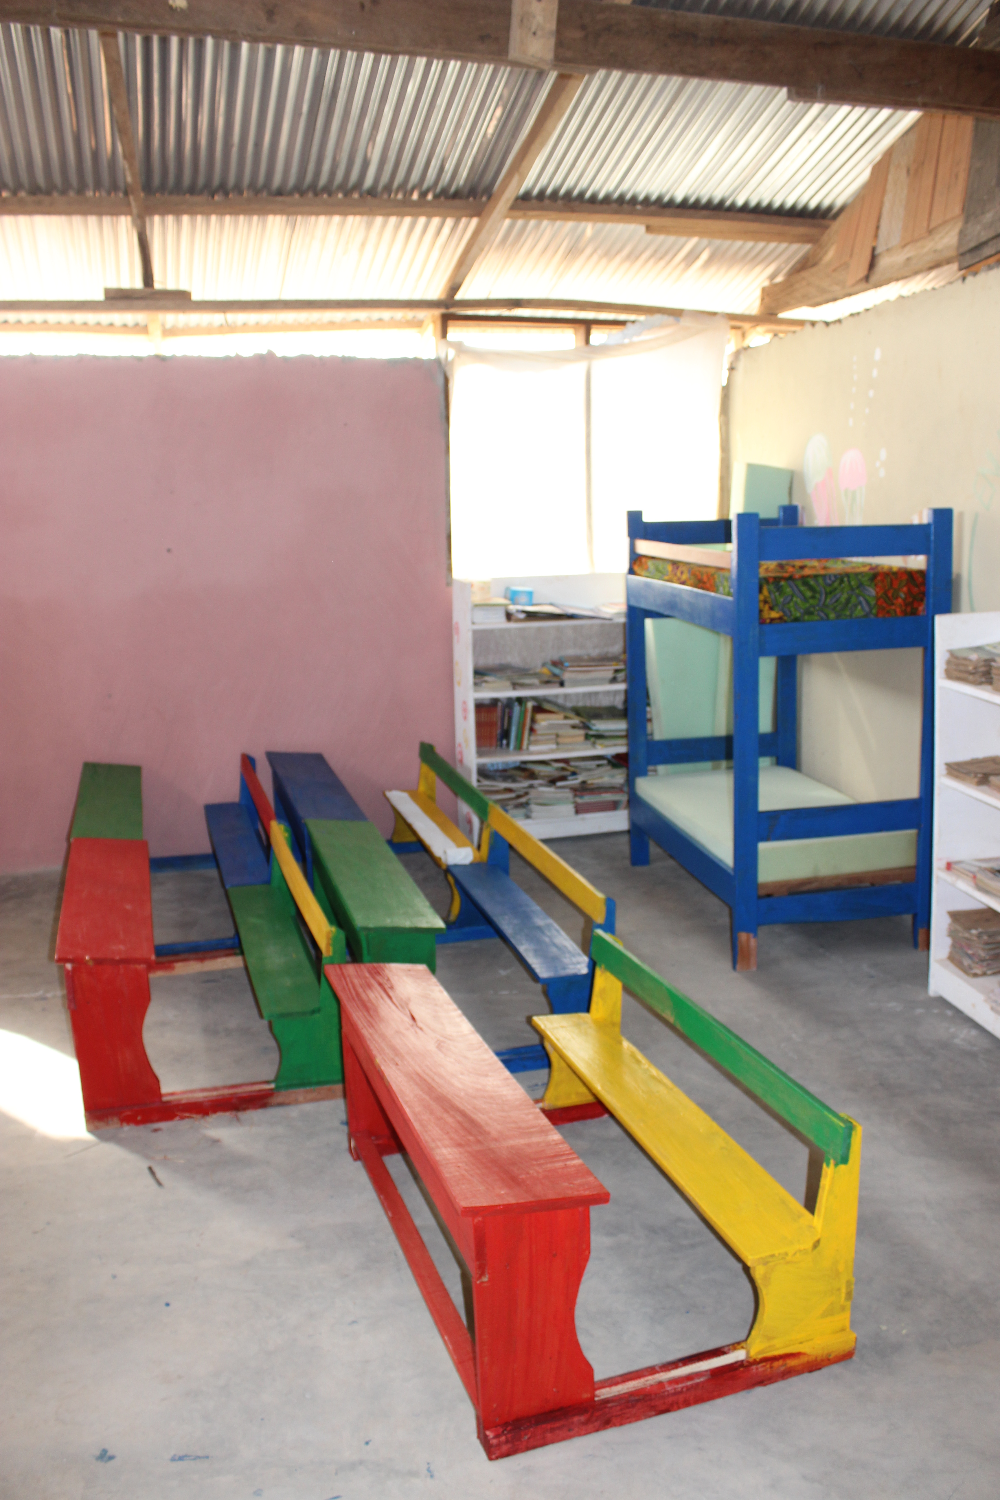 Improving school infrastructures